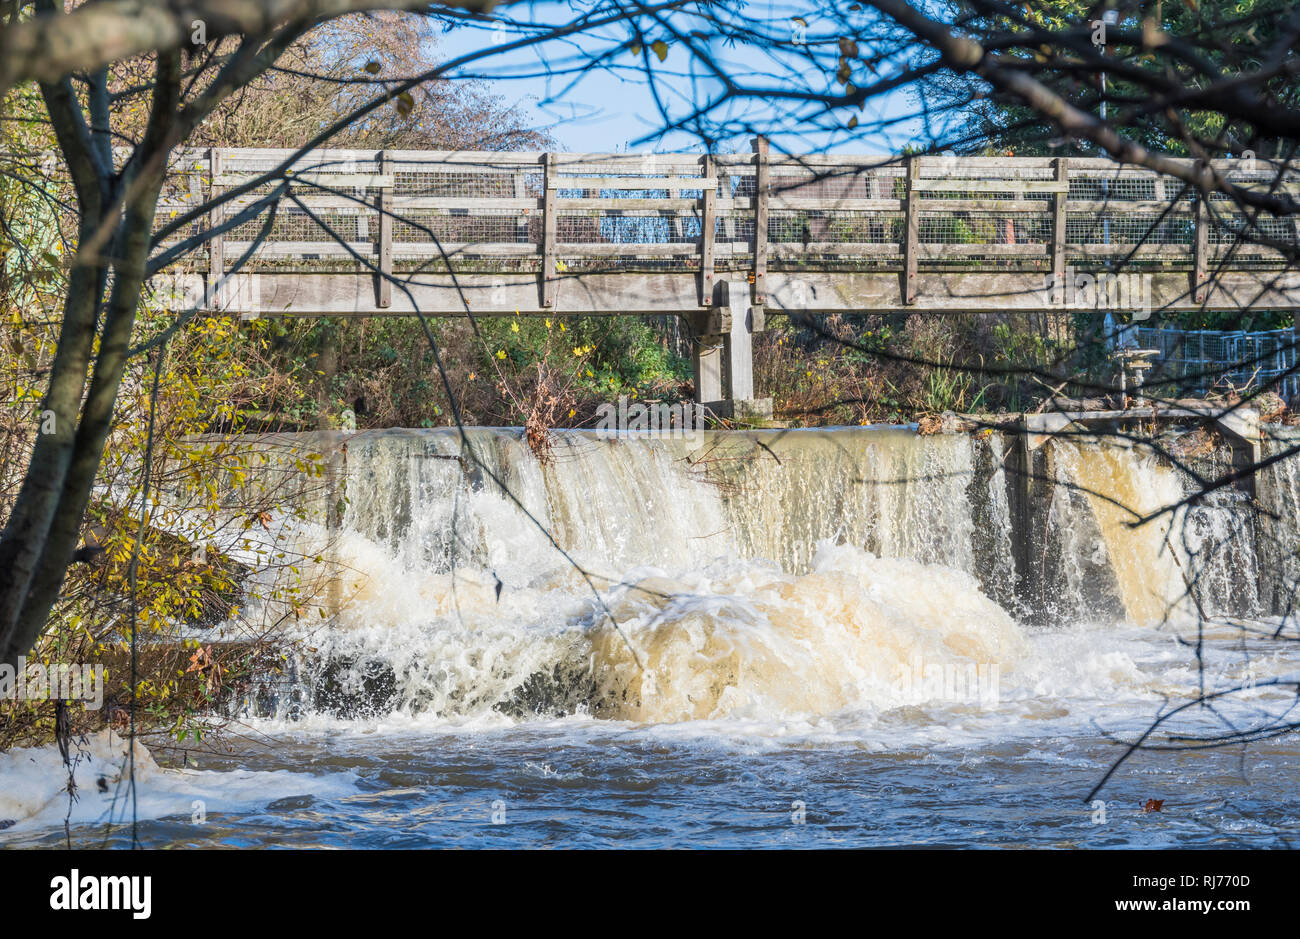 North Mill Weir and sluice gates on the River Rother (Western) in Easebourne, Midhurst, West Sussex, England, UK. - Stock Image